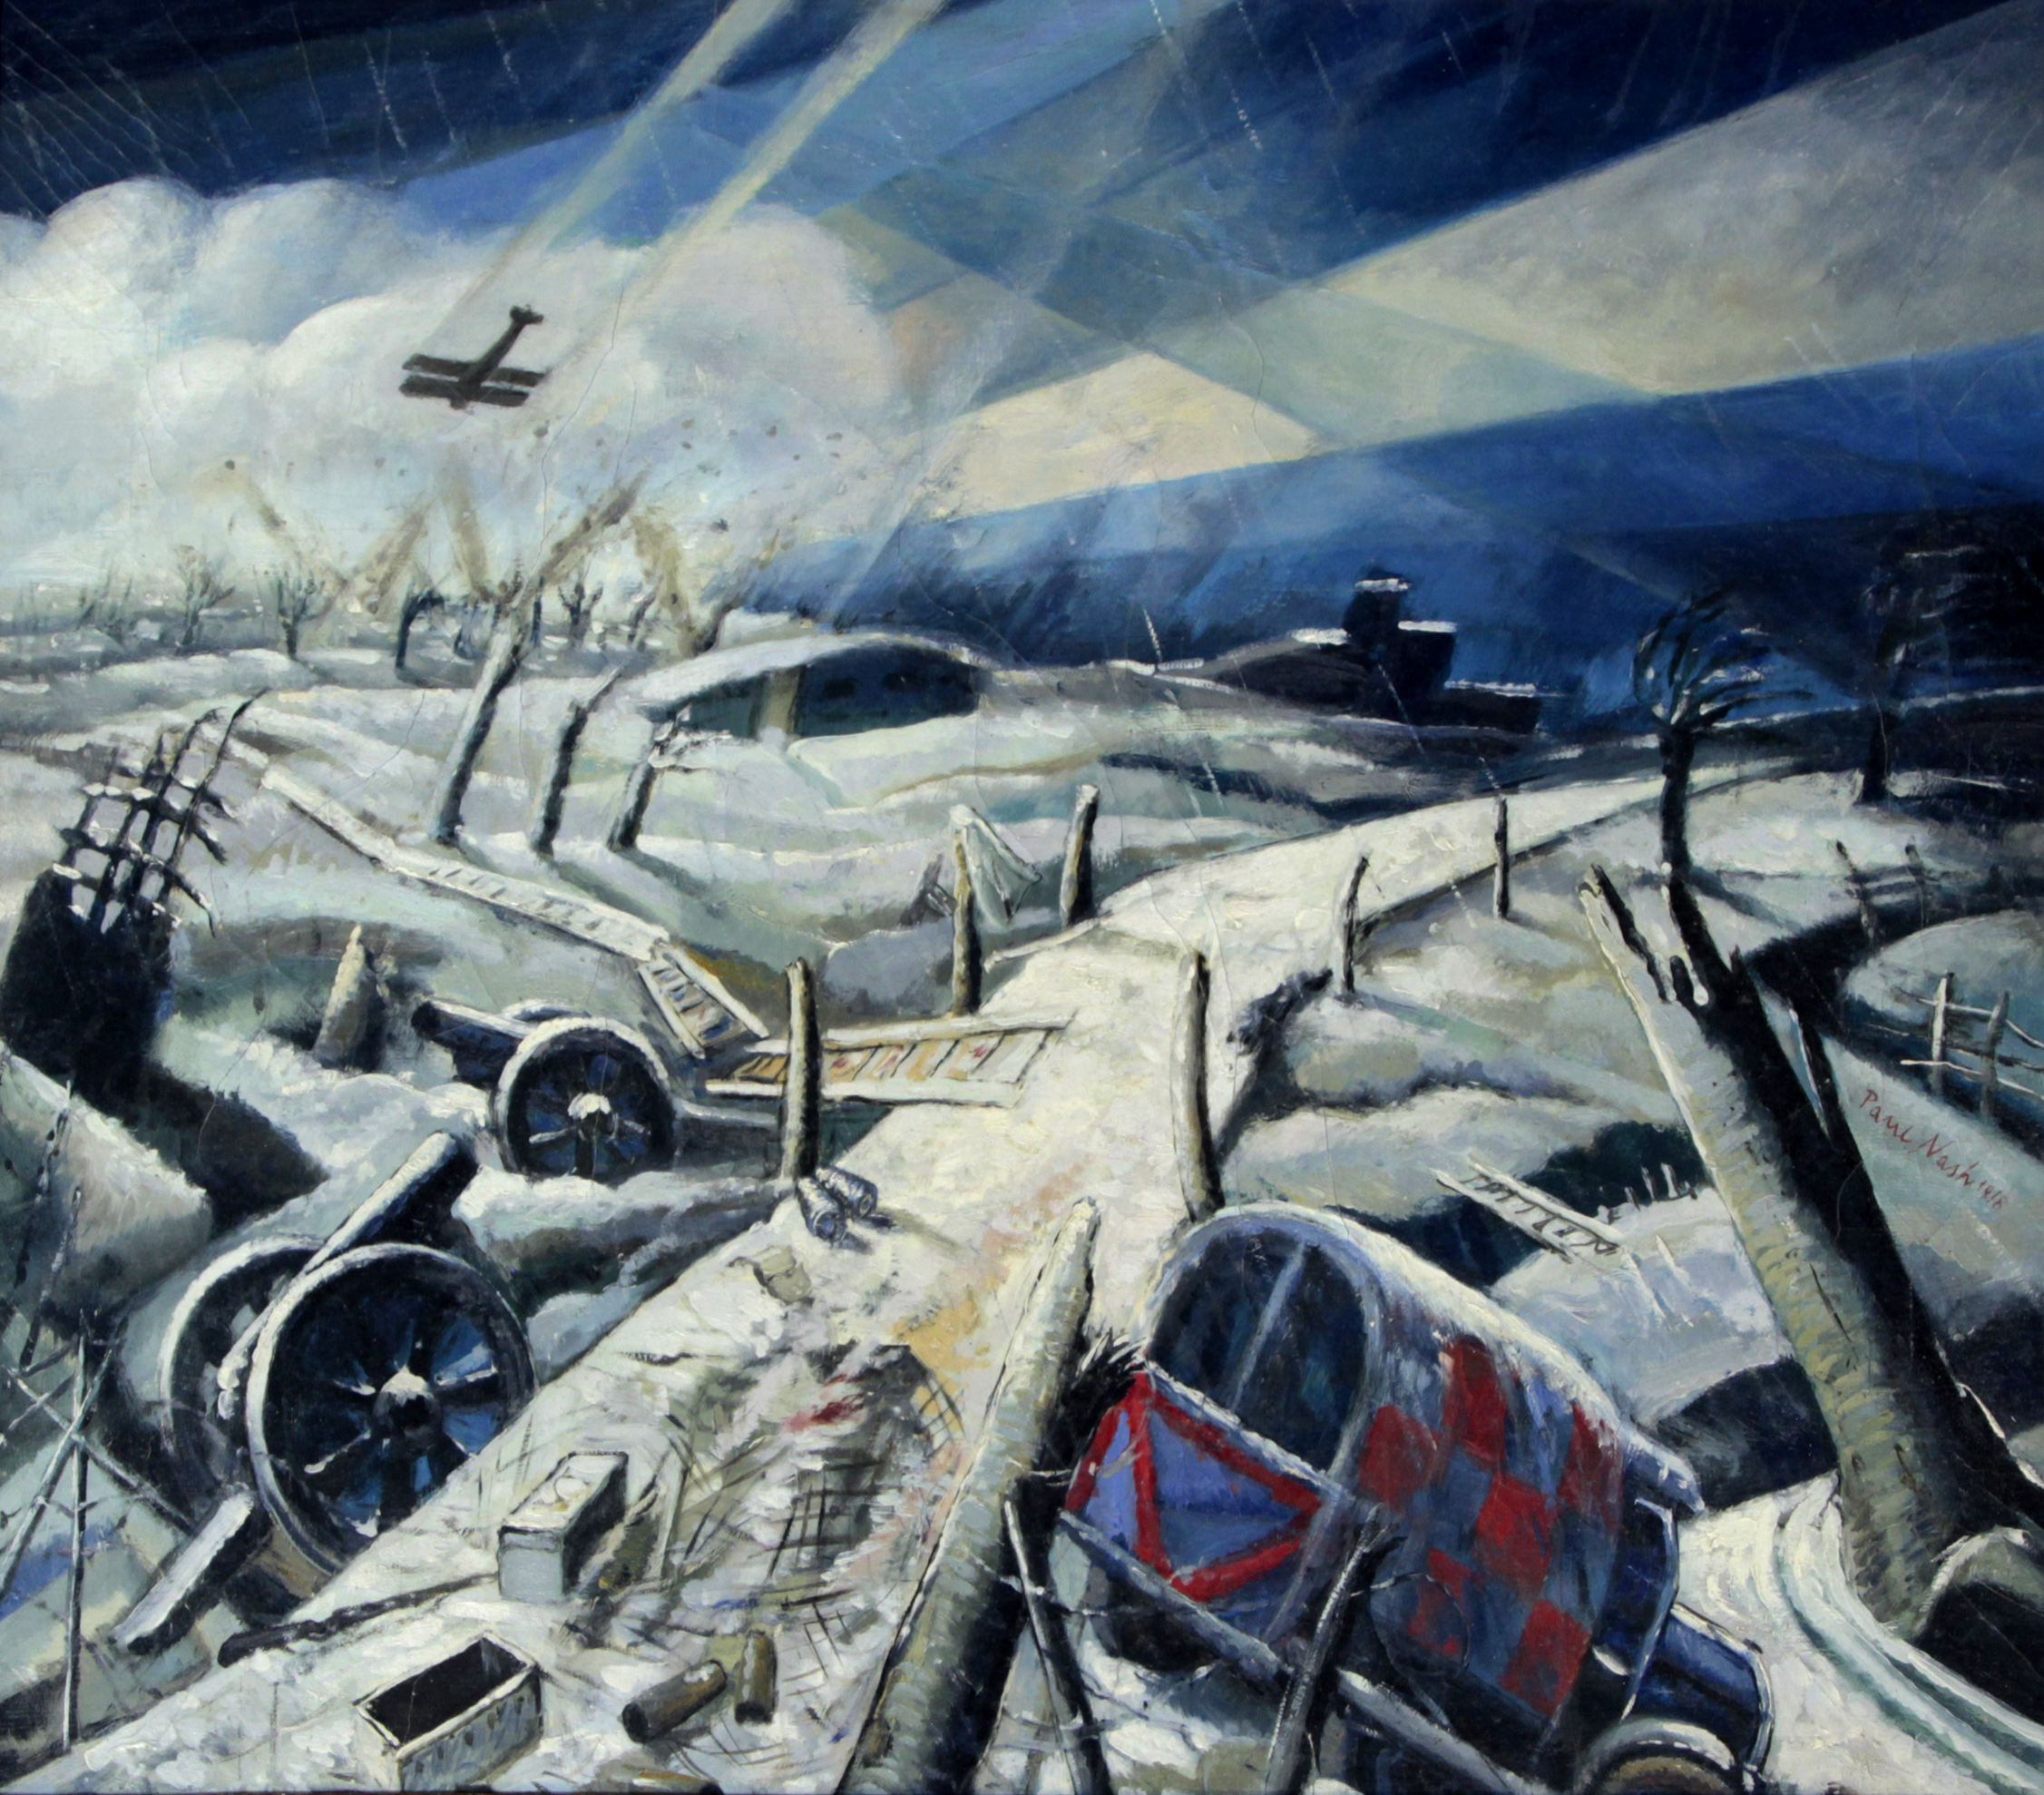 Lot 607 - Paul Nash (British 1889-1946)- 'A Scarred Battlefield' Oil on canvas, signed 'Paul Nash' and dated